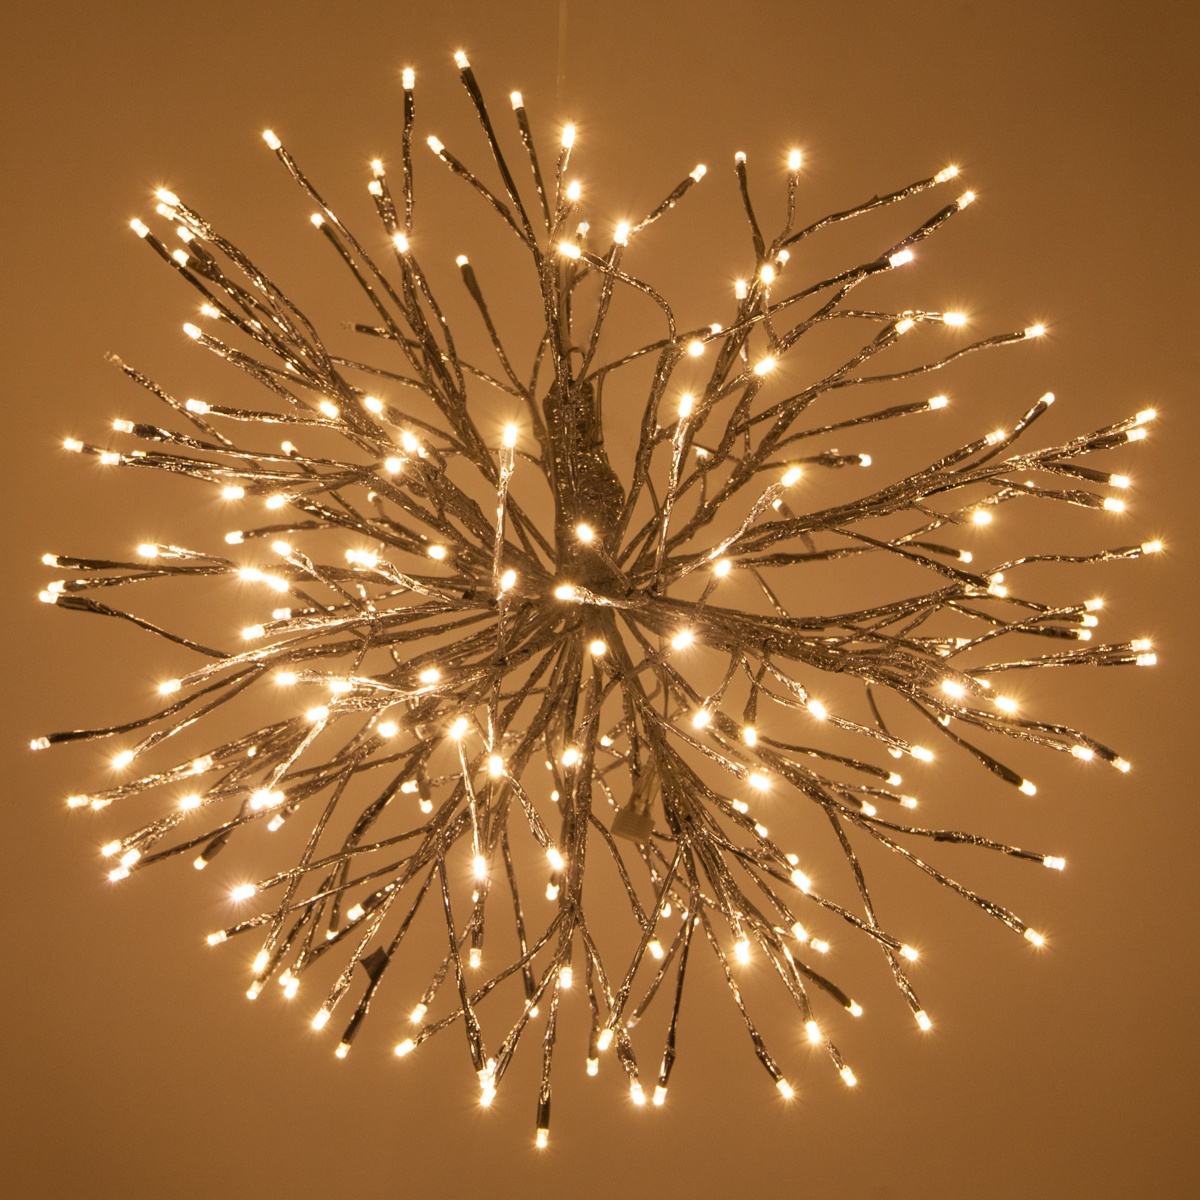 Led Rope Lights For Home Silver Starburst Lighted Branches With Warm White Led